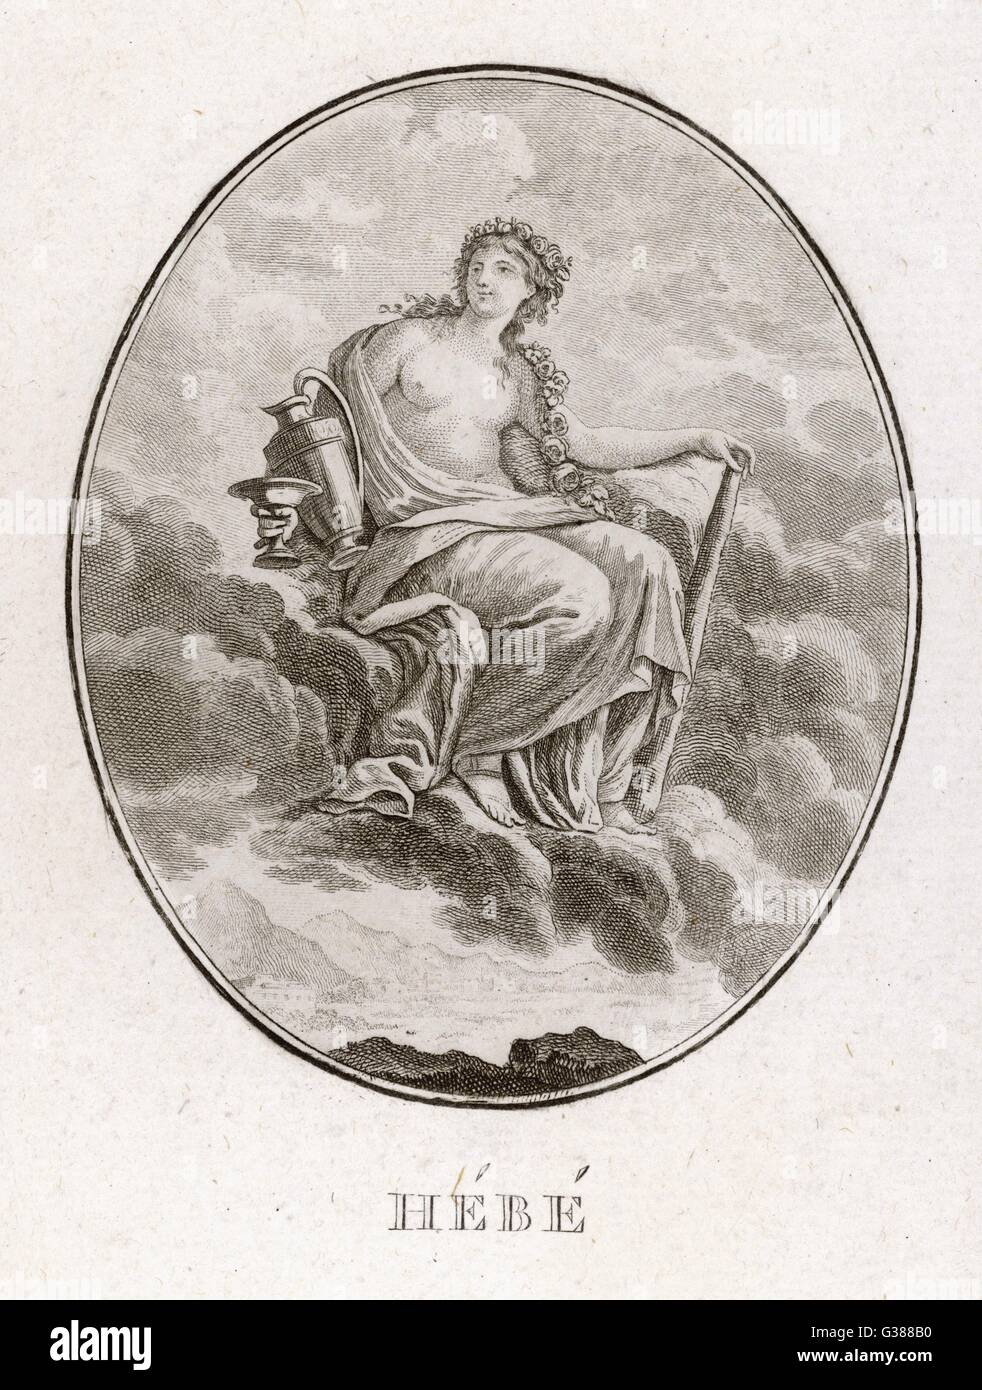 Daughter of Zeus and Hera,  Hebe was the Greek goddess of  youth ; she lived on Mount  Olympus, and was cupbearer - Stock Image